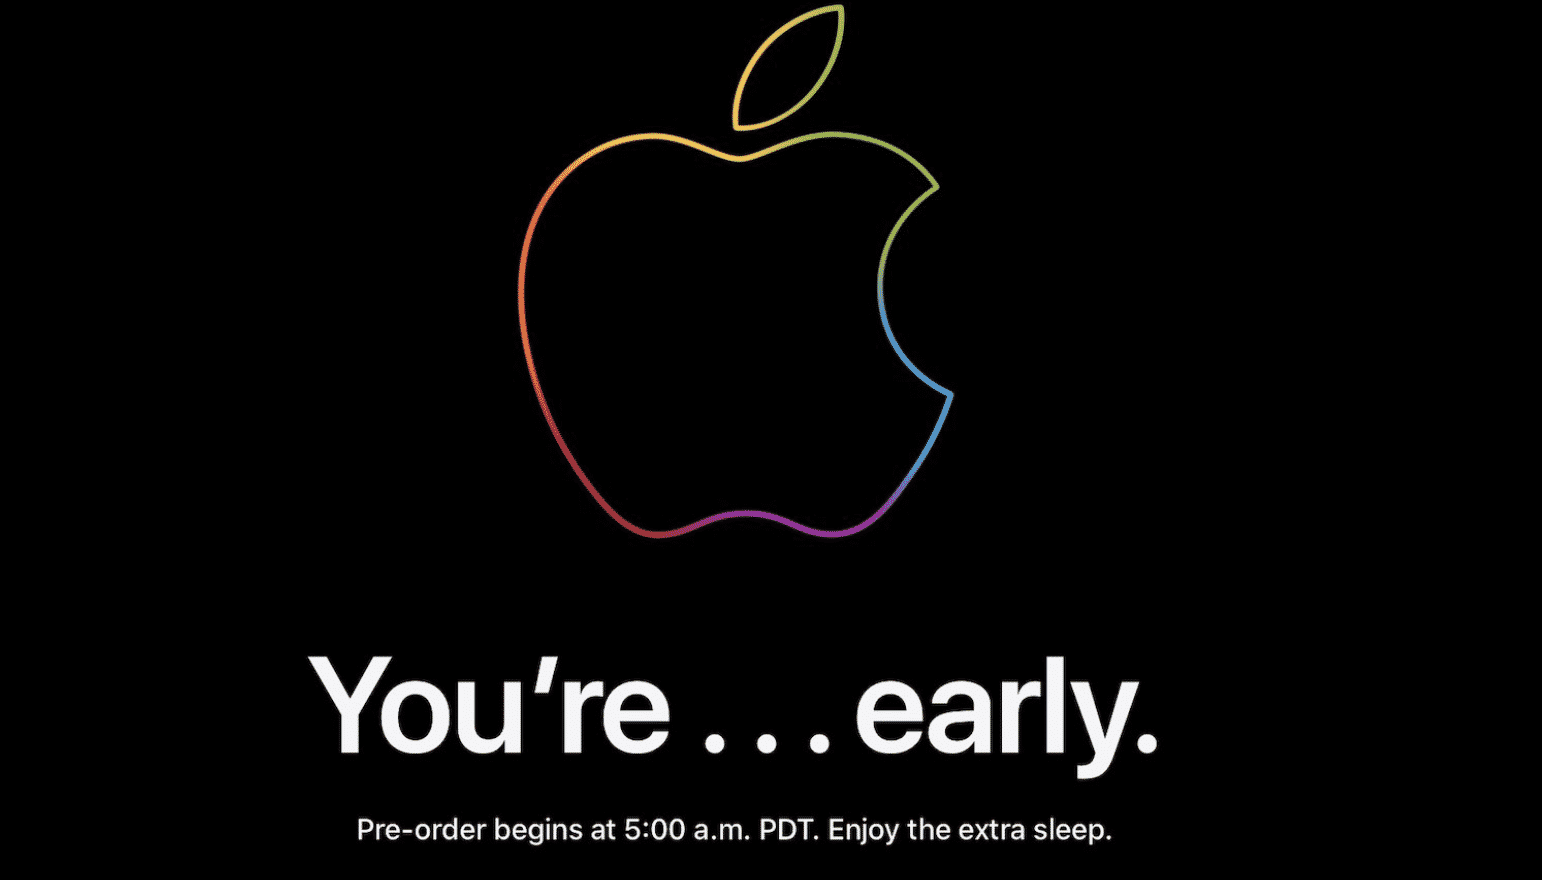 You're Early